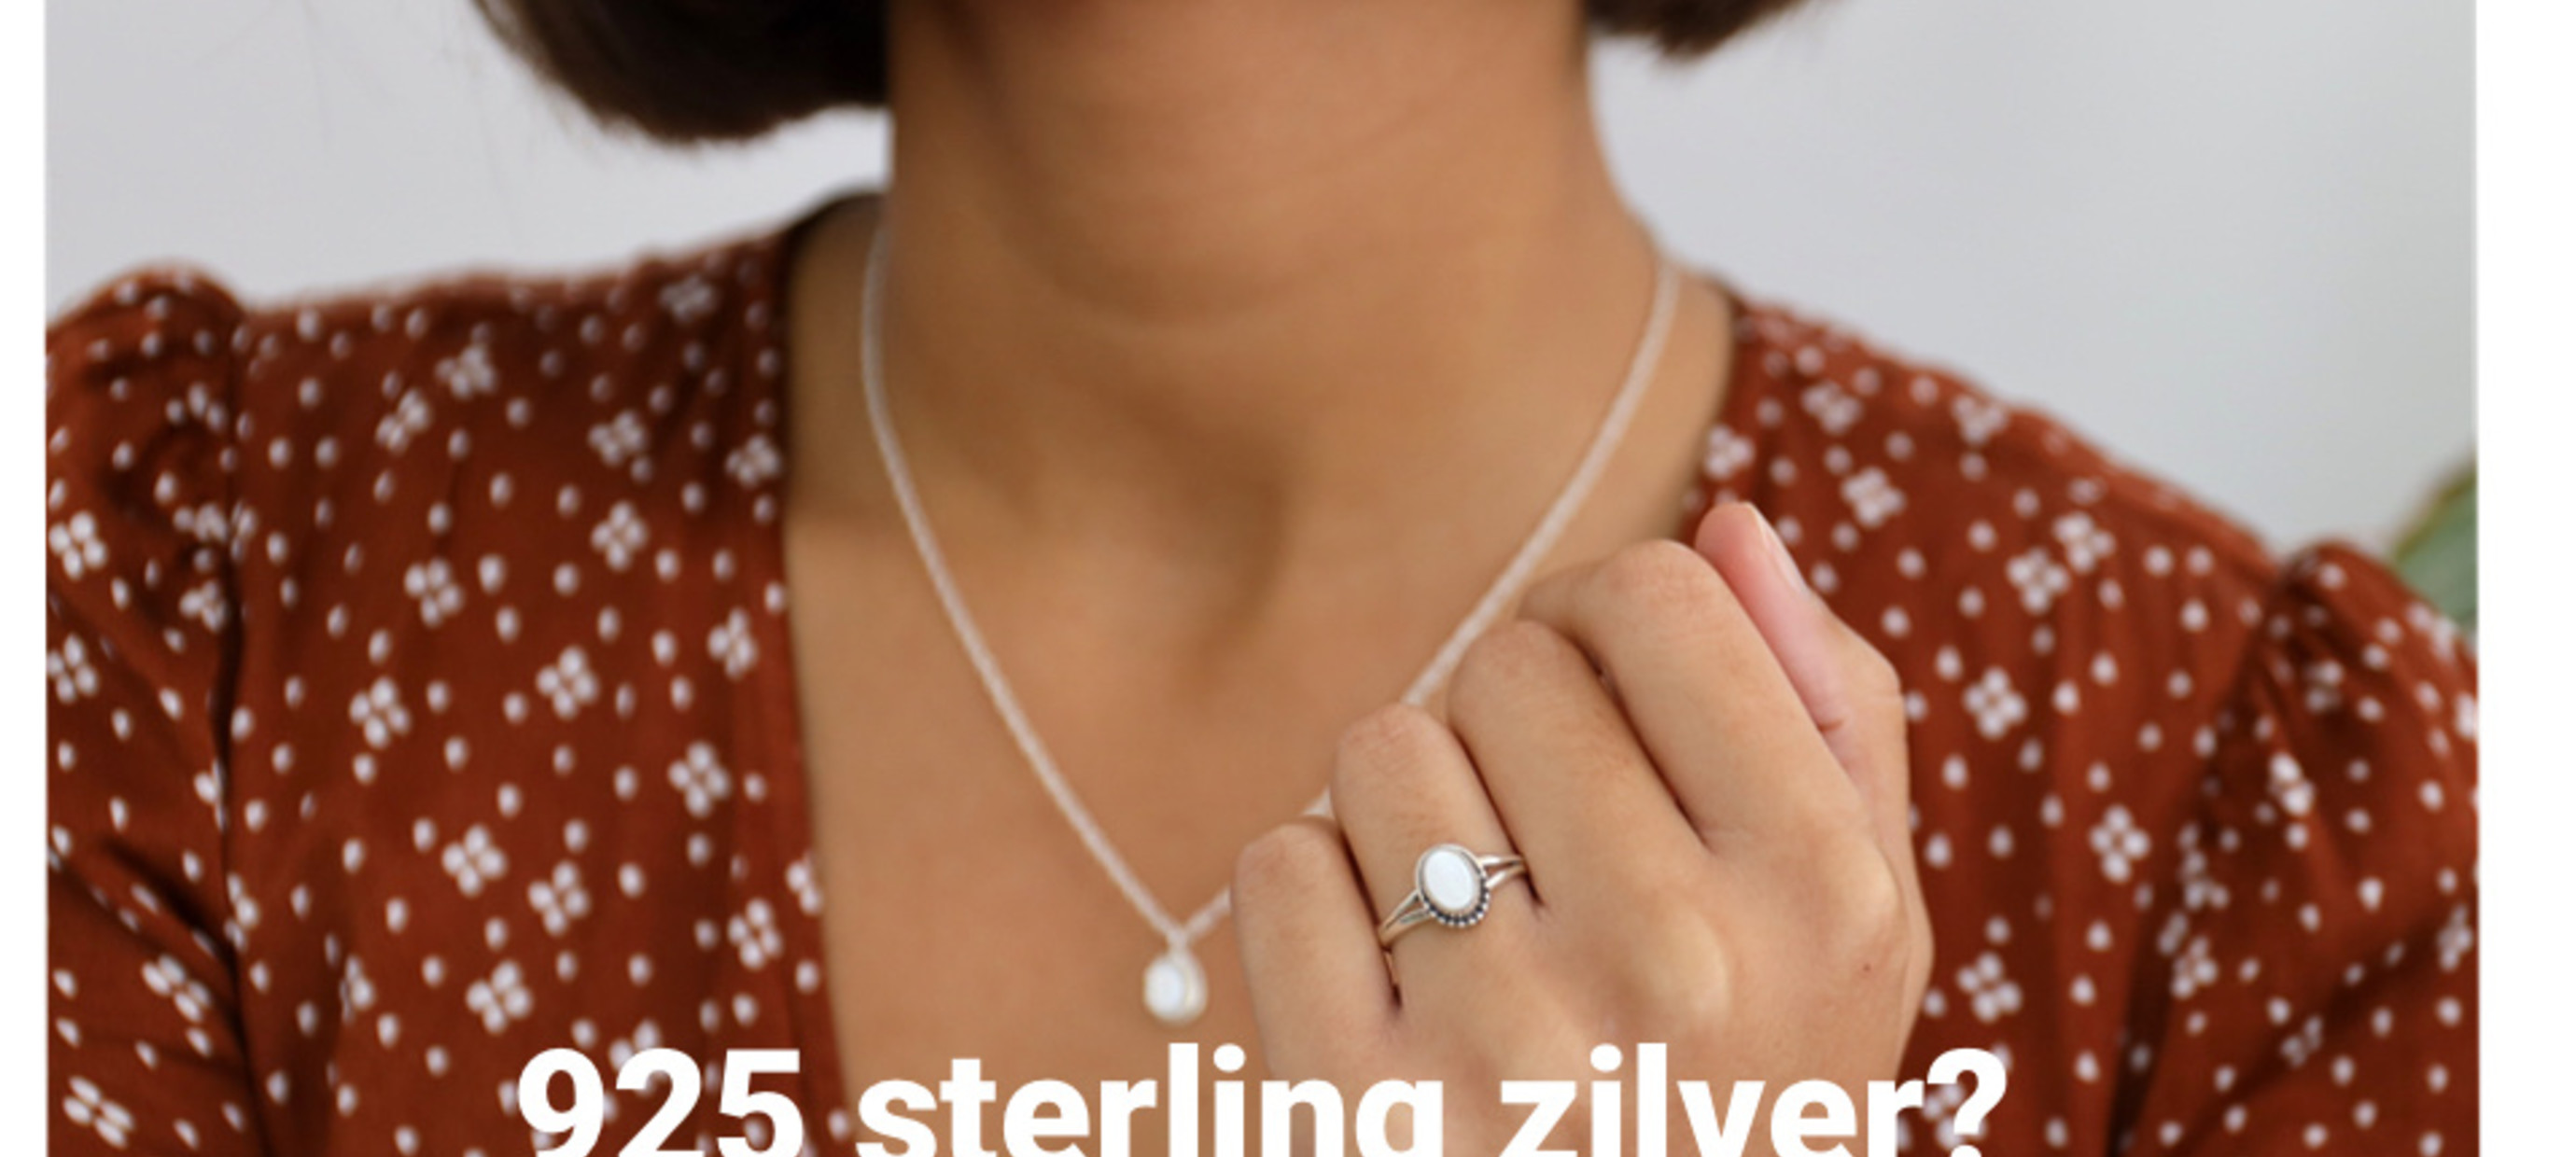 Wat is 925 sterling zilver?